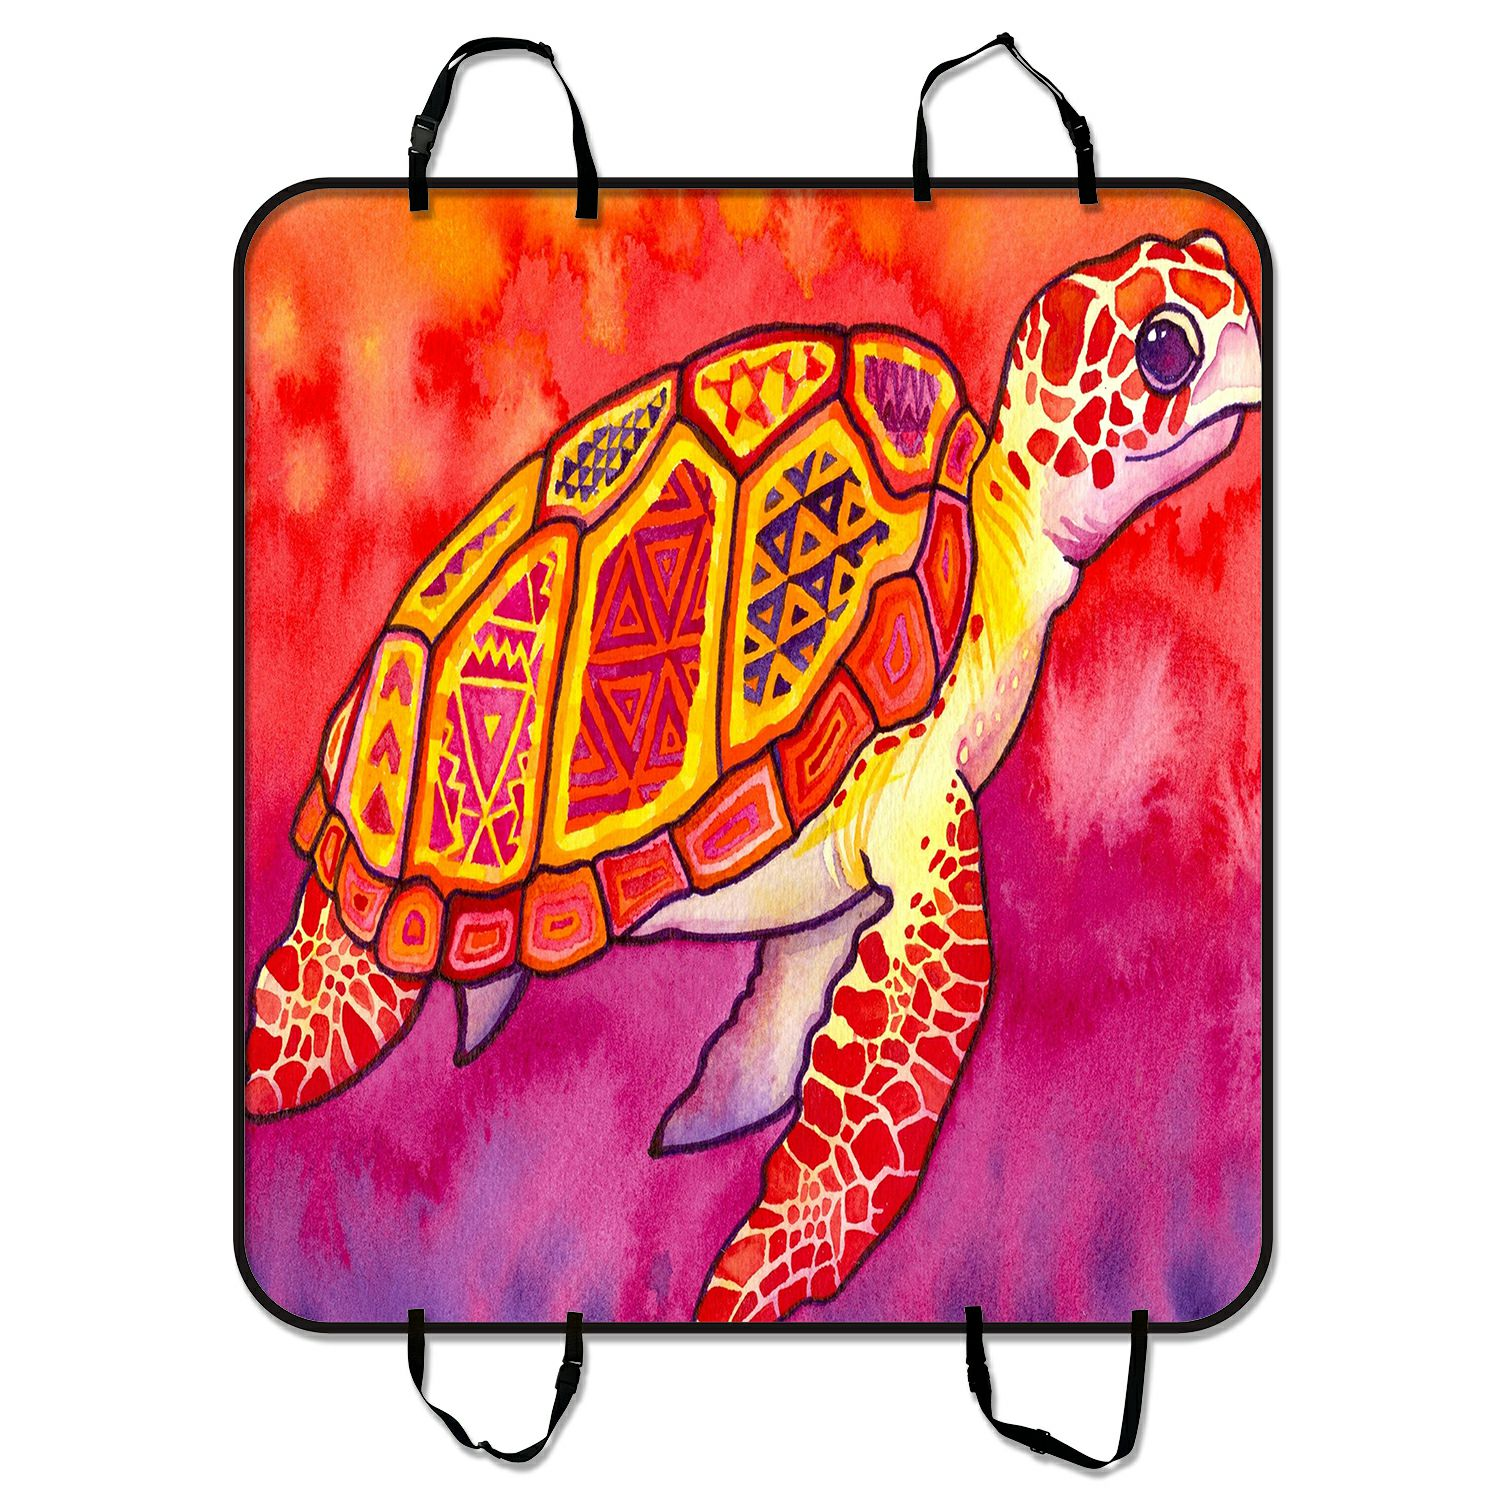 ZKGK Sea Turtle Painting Dog Car Seat Cover Dog Car Seat ...